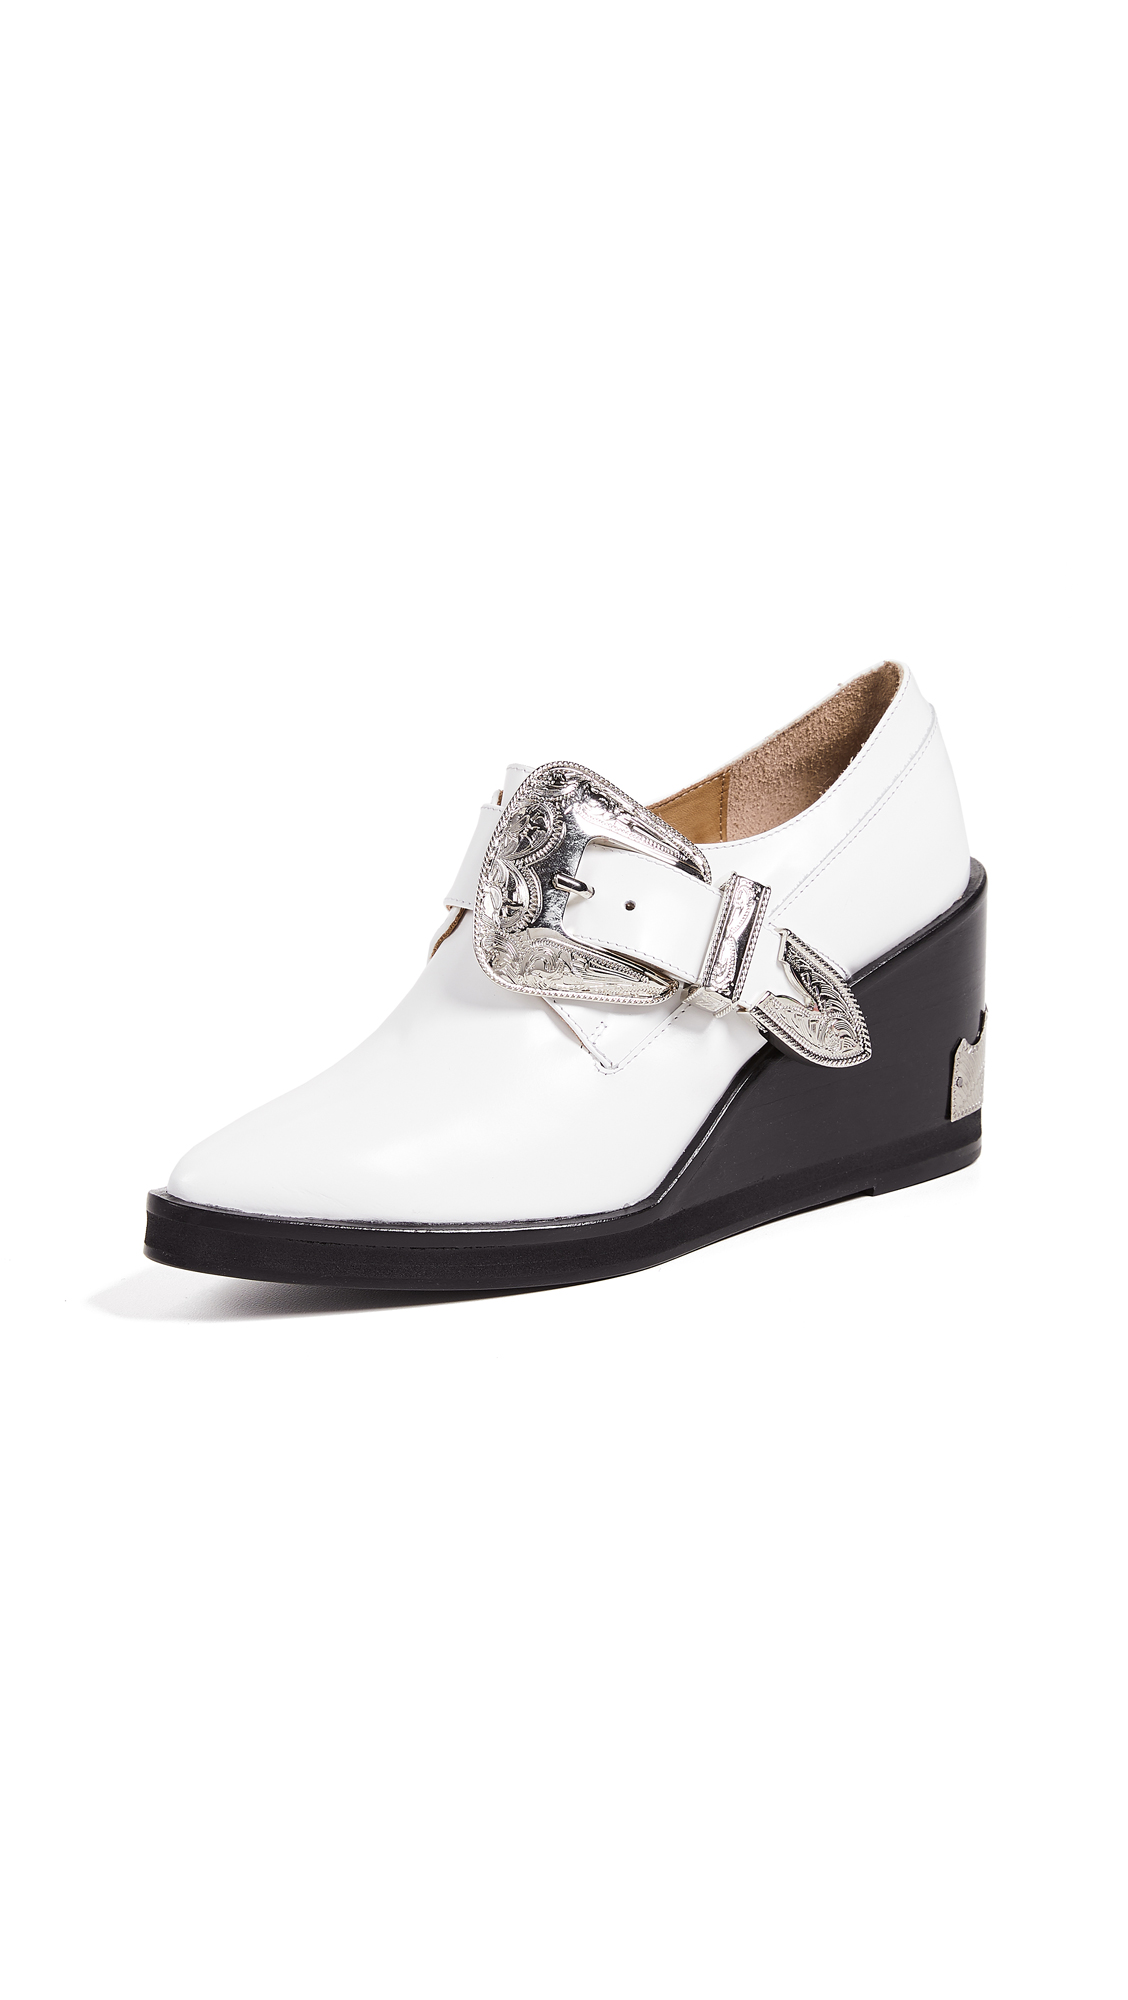 Toga Pulla Buckled Oxford Wedge - White